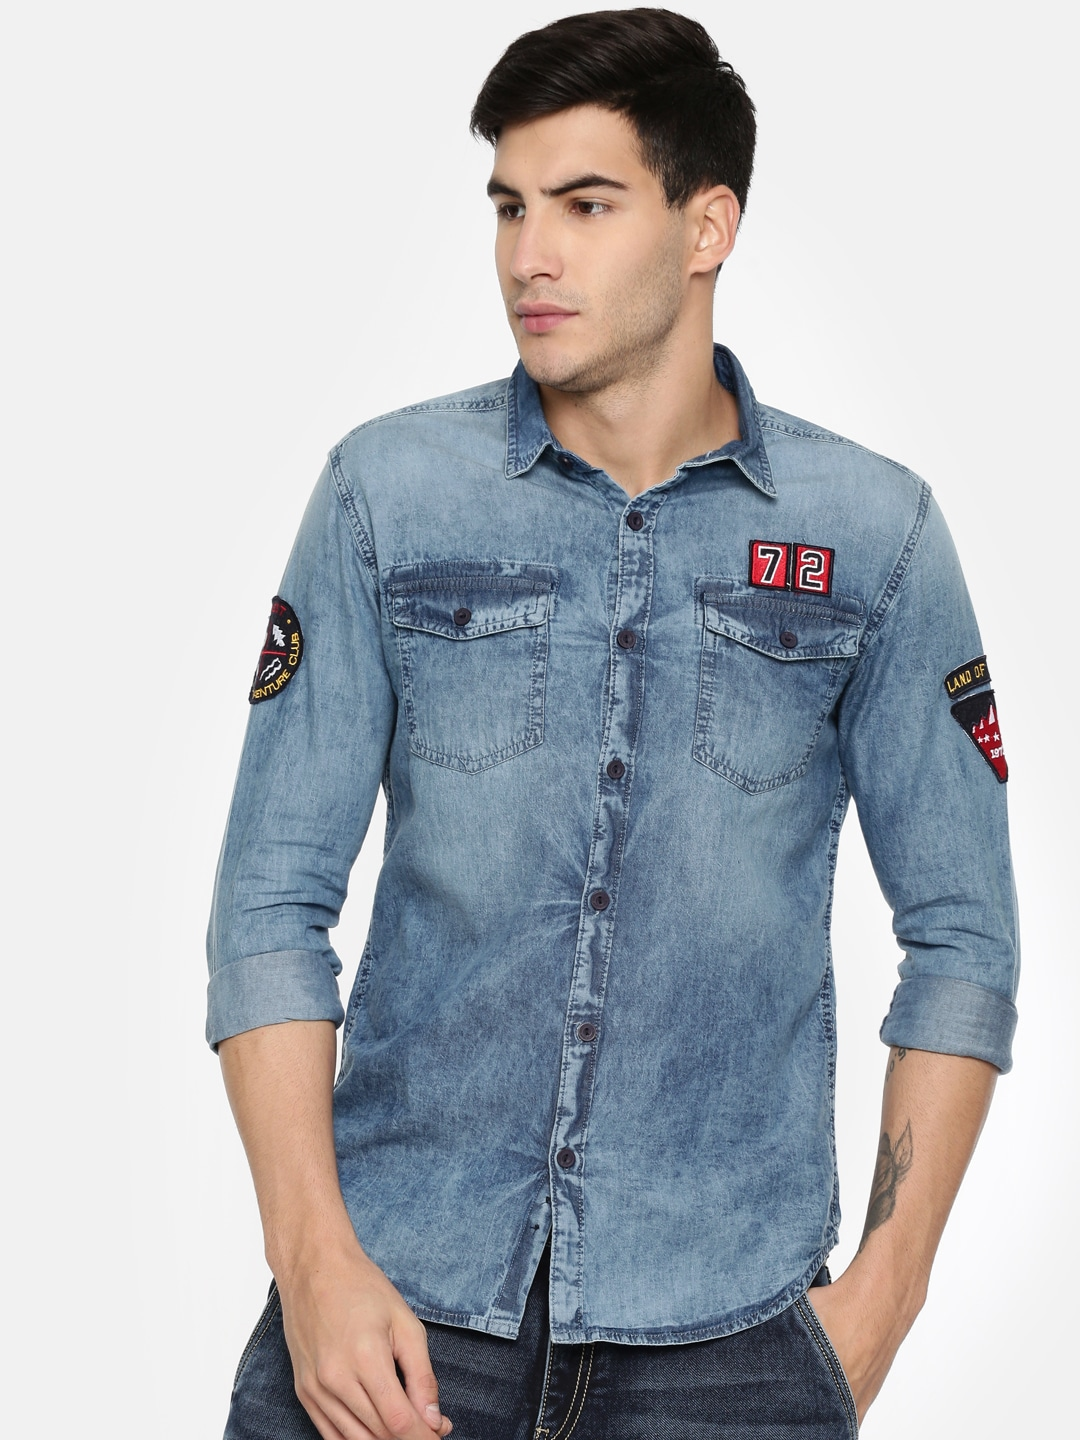 56681a5d36 Denim - Buy Denim Clothing for Men